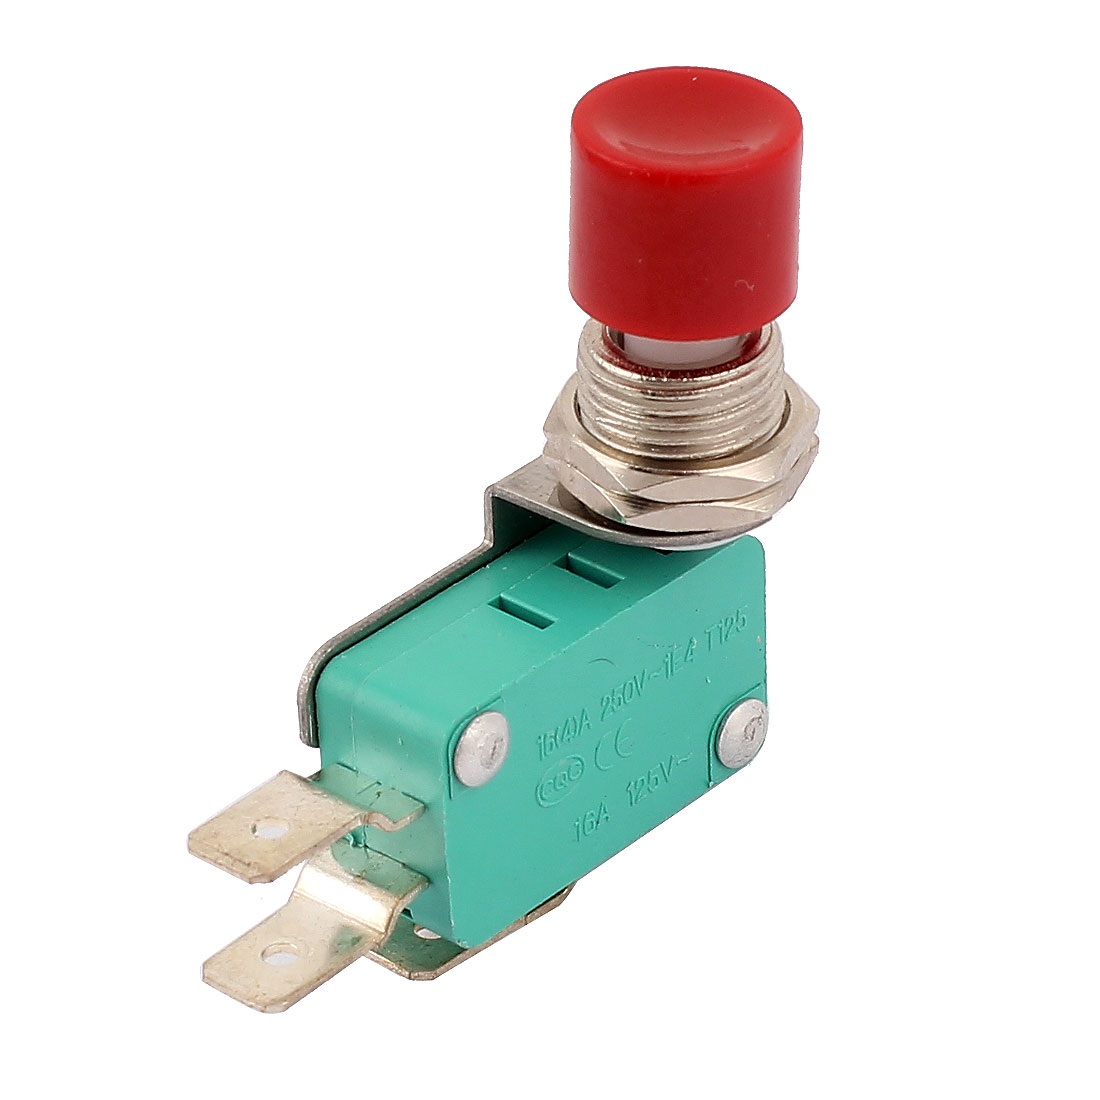 AC 250V/125V 16(4)A Red Push Button Lever Momentary SPDT Micro Switch